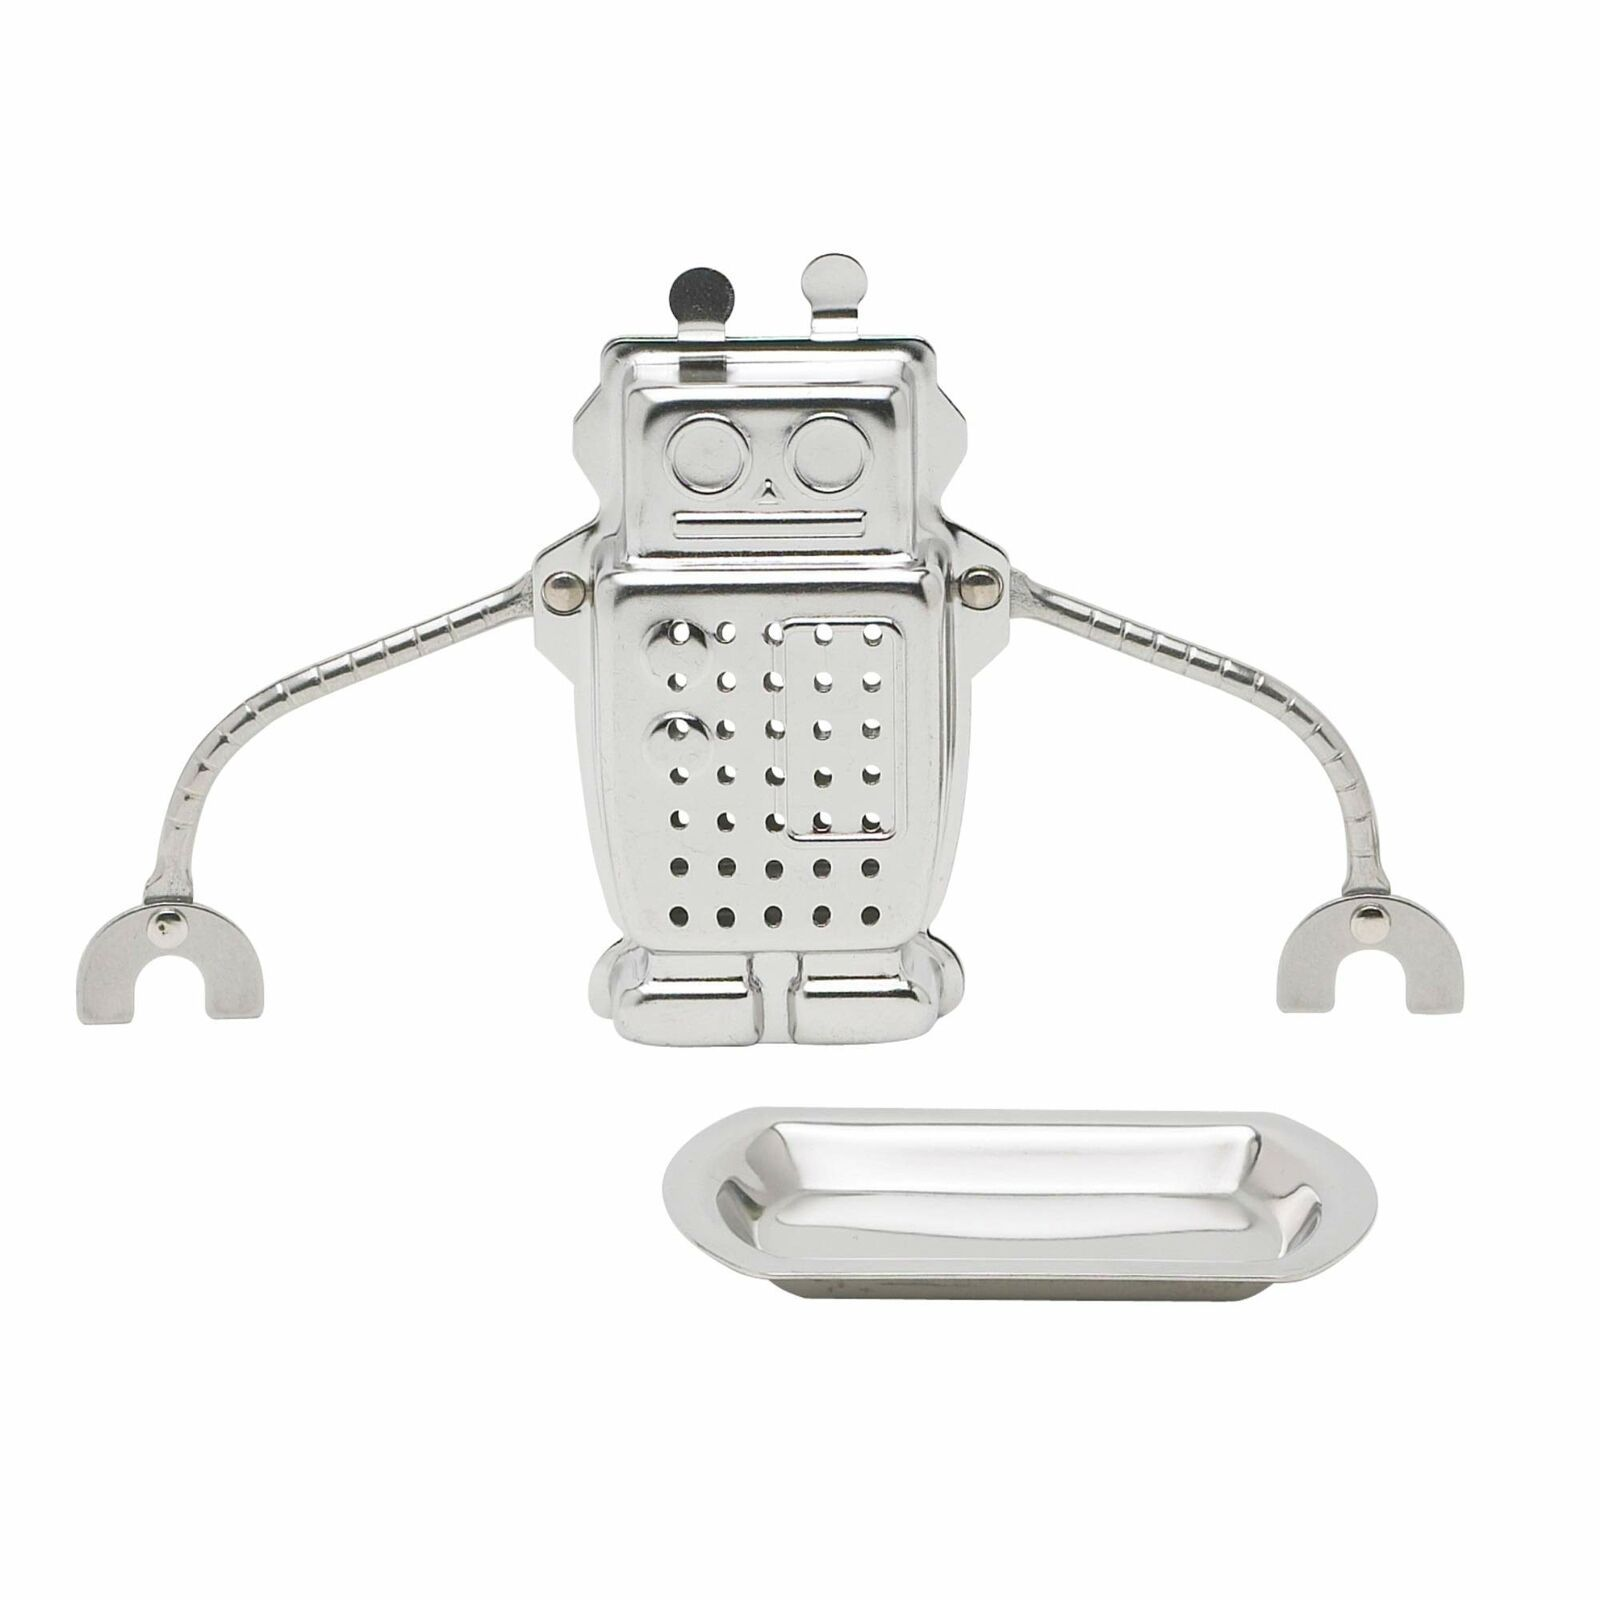 HIC Tea Infuser, Hangin' Dunkin' Droid Robot with Drip Tray, Stainless Steel - $10.05